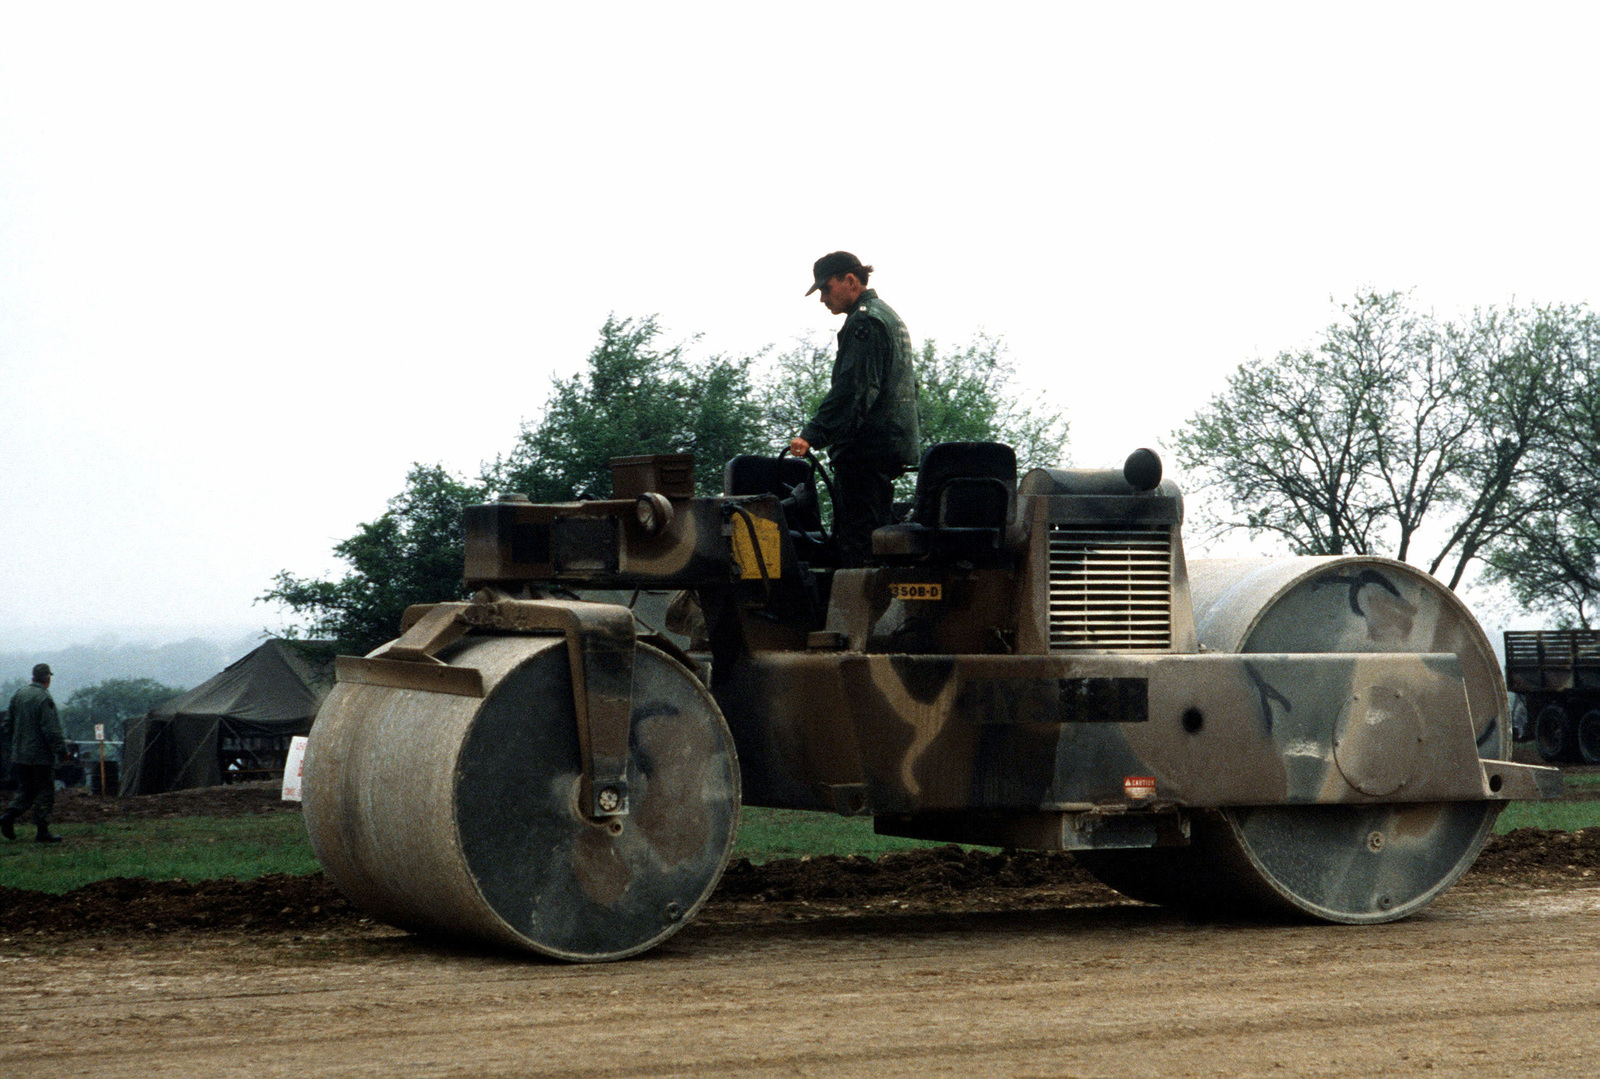 A member of the 62nd Engineer Battalion, 13th Corps Support Command, III Corps operates a motorized roller to upgrade an airfield during joint Air Force and US Readiness Command training exercise Brave Shield XIX